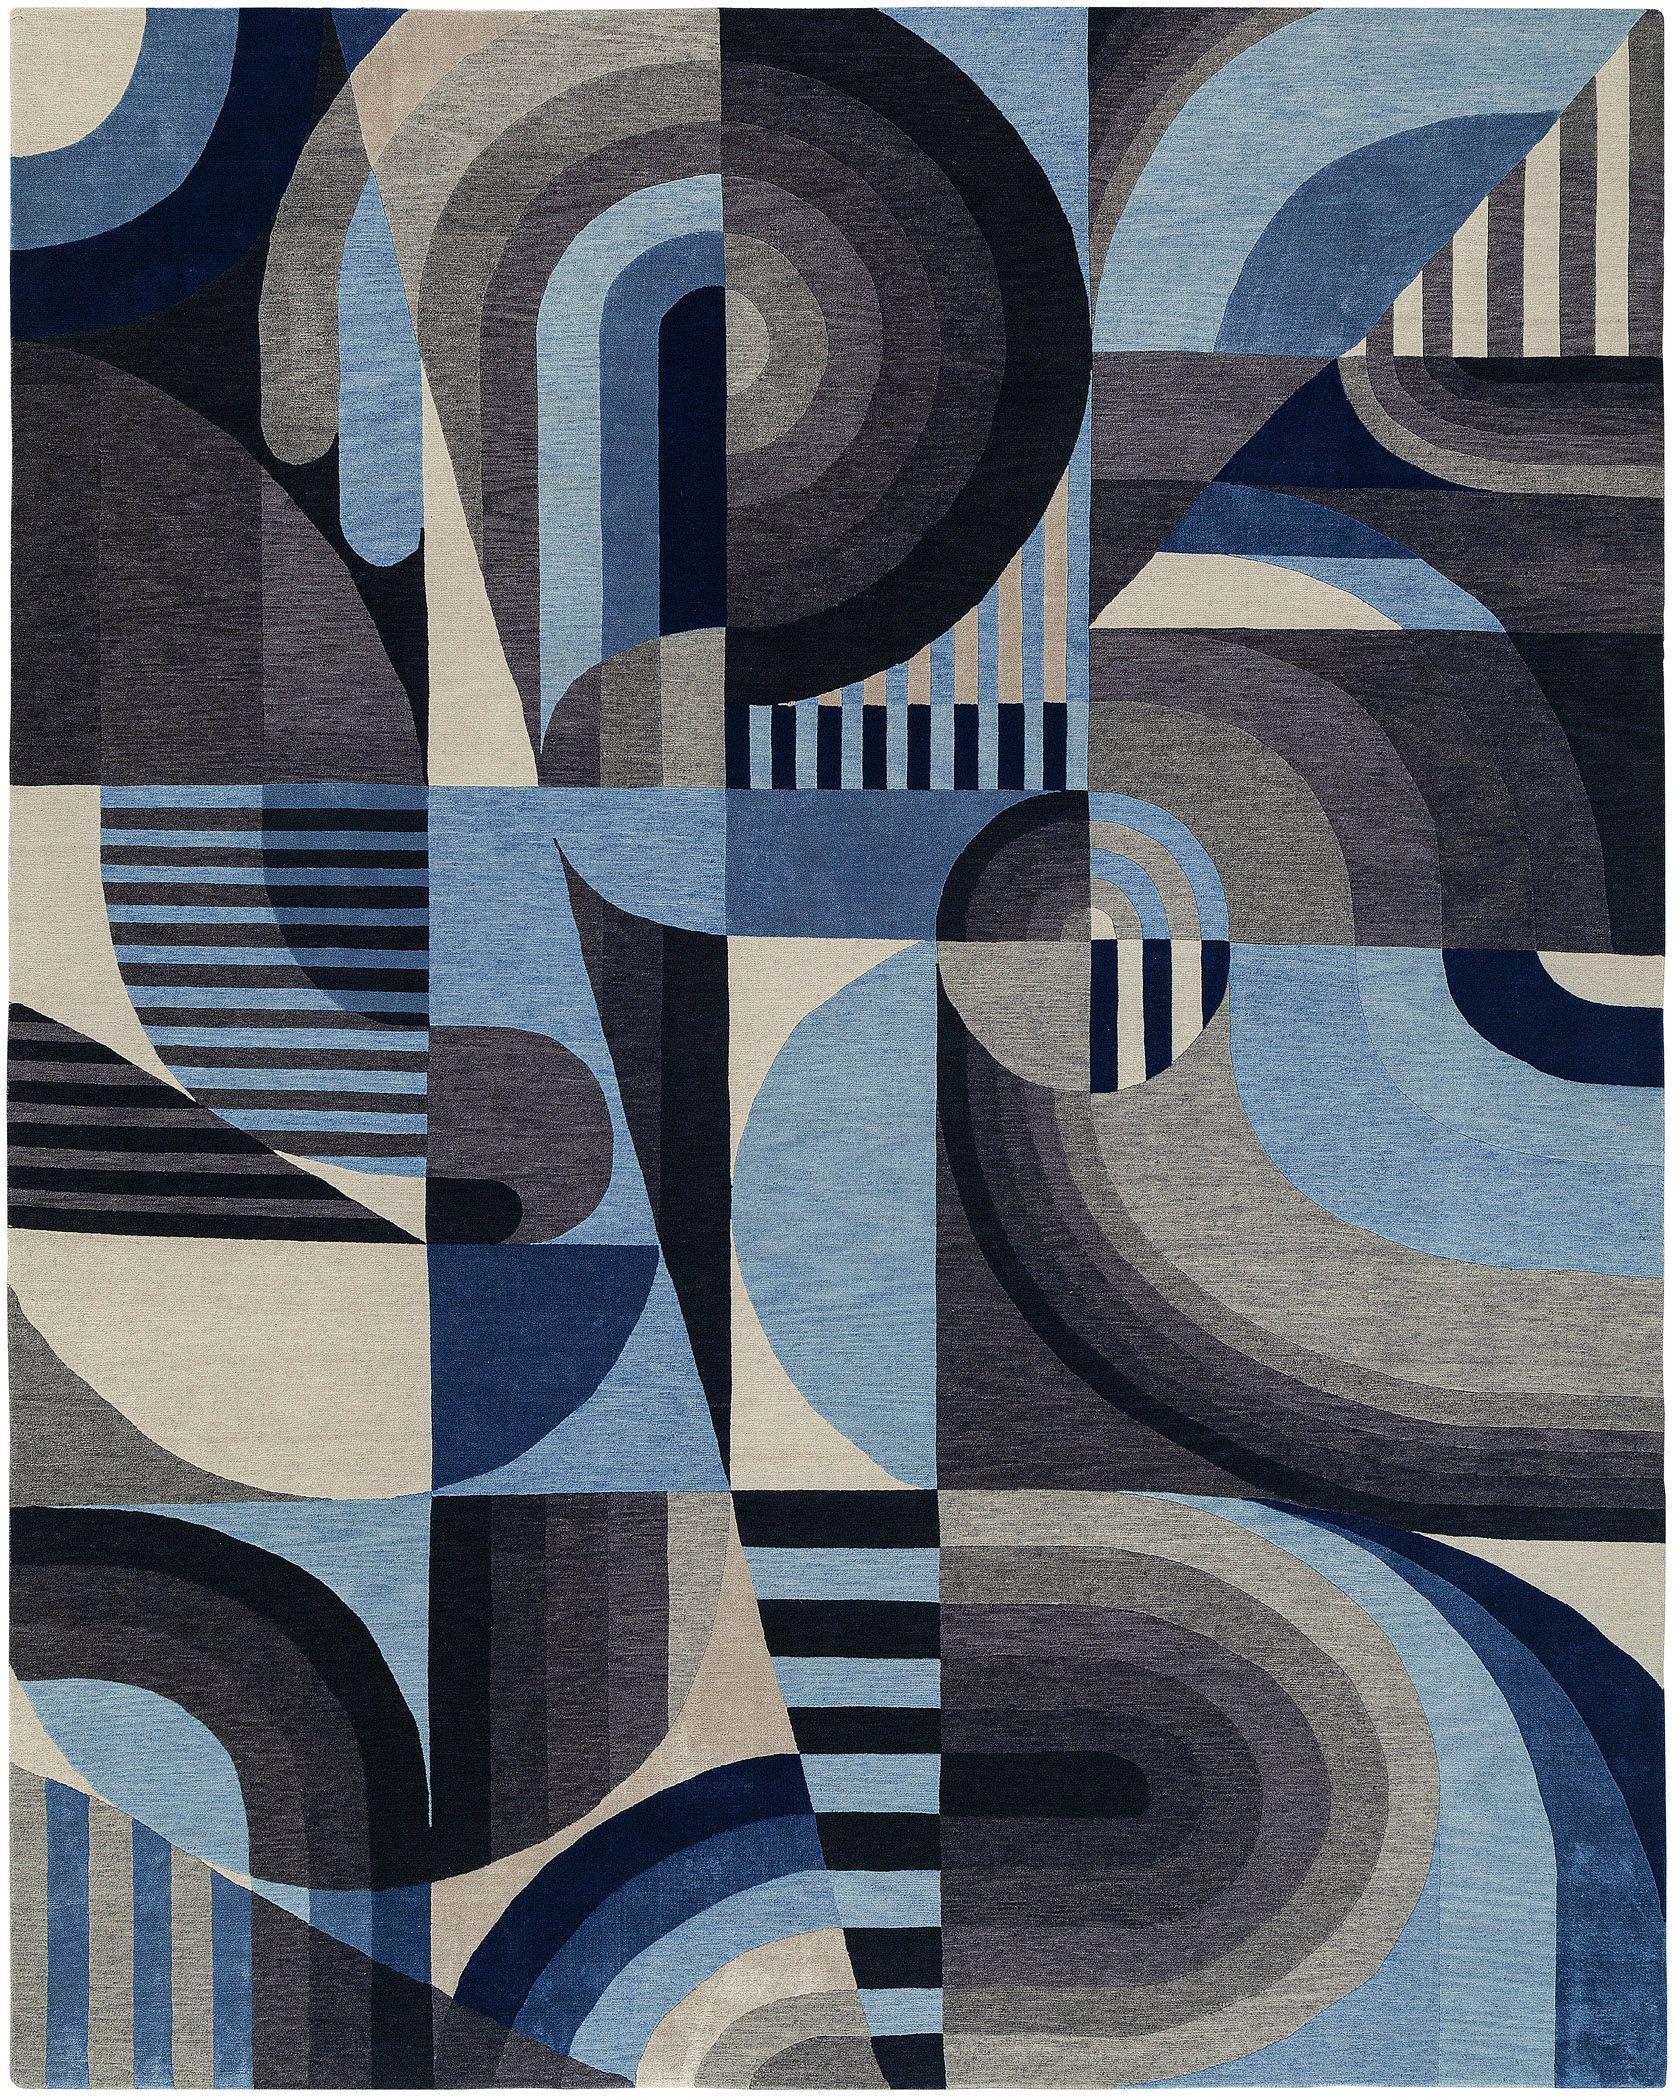 Hand-knotted rug in deep blue Picasso-like abstract design